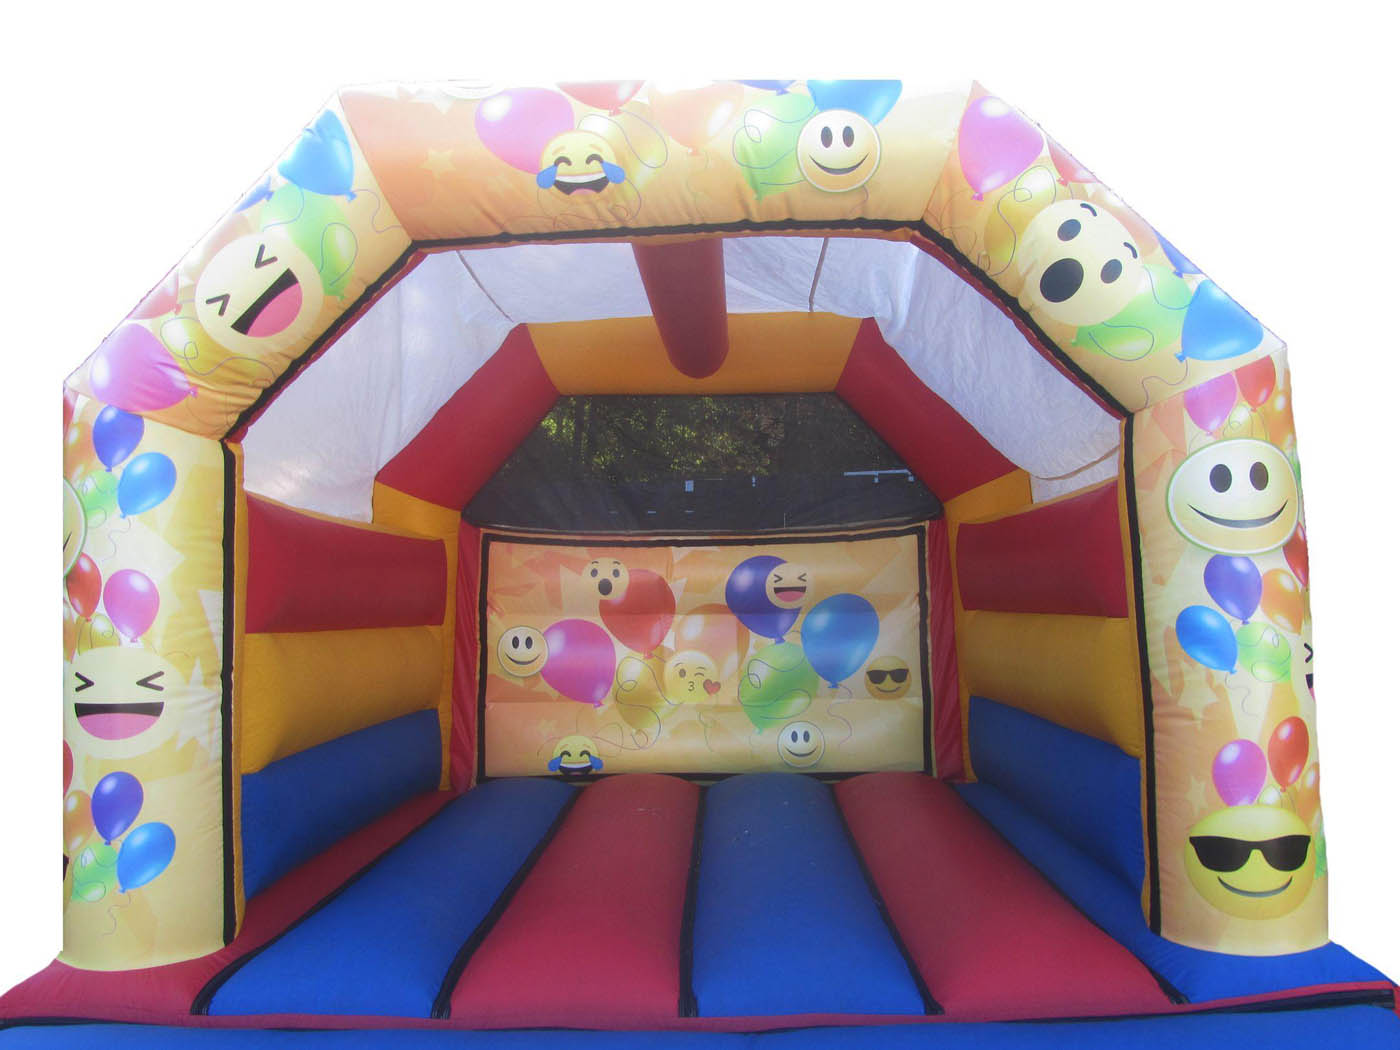 Digitally Printed Emoji Themed Artwork on Bouncy Castle